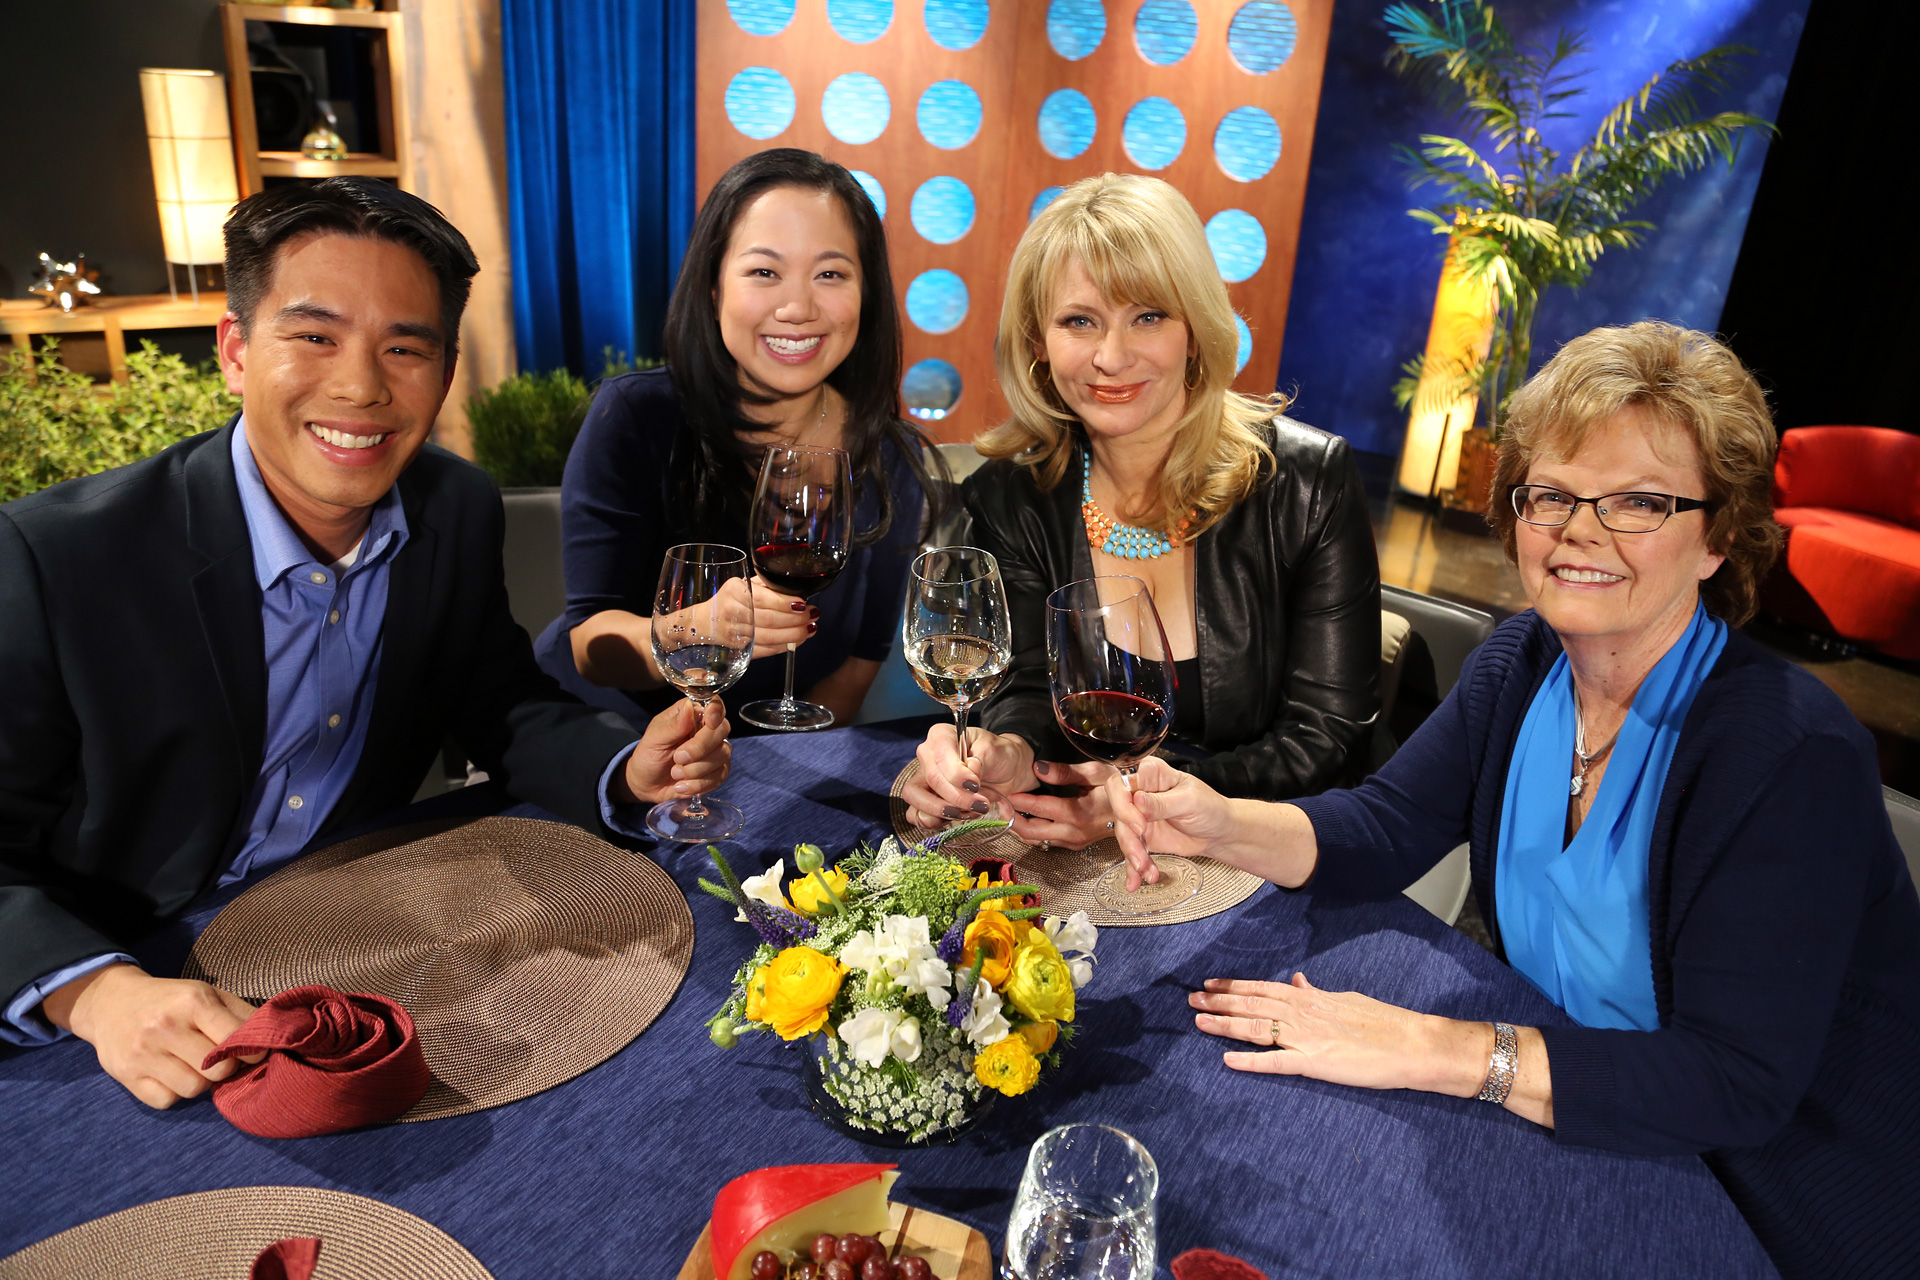 Host Leslie Sbrocco and guests on the set of the episode 7 of season 11.